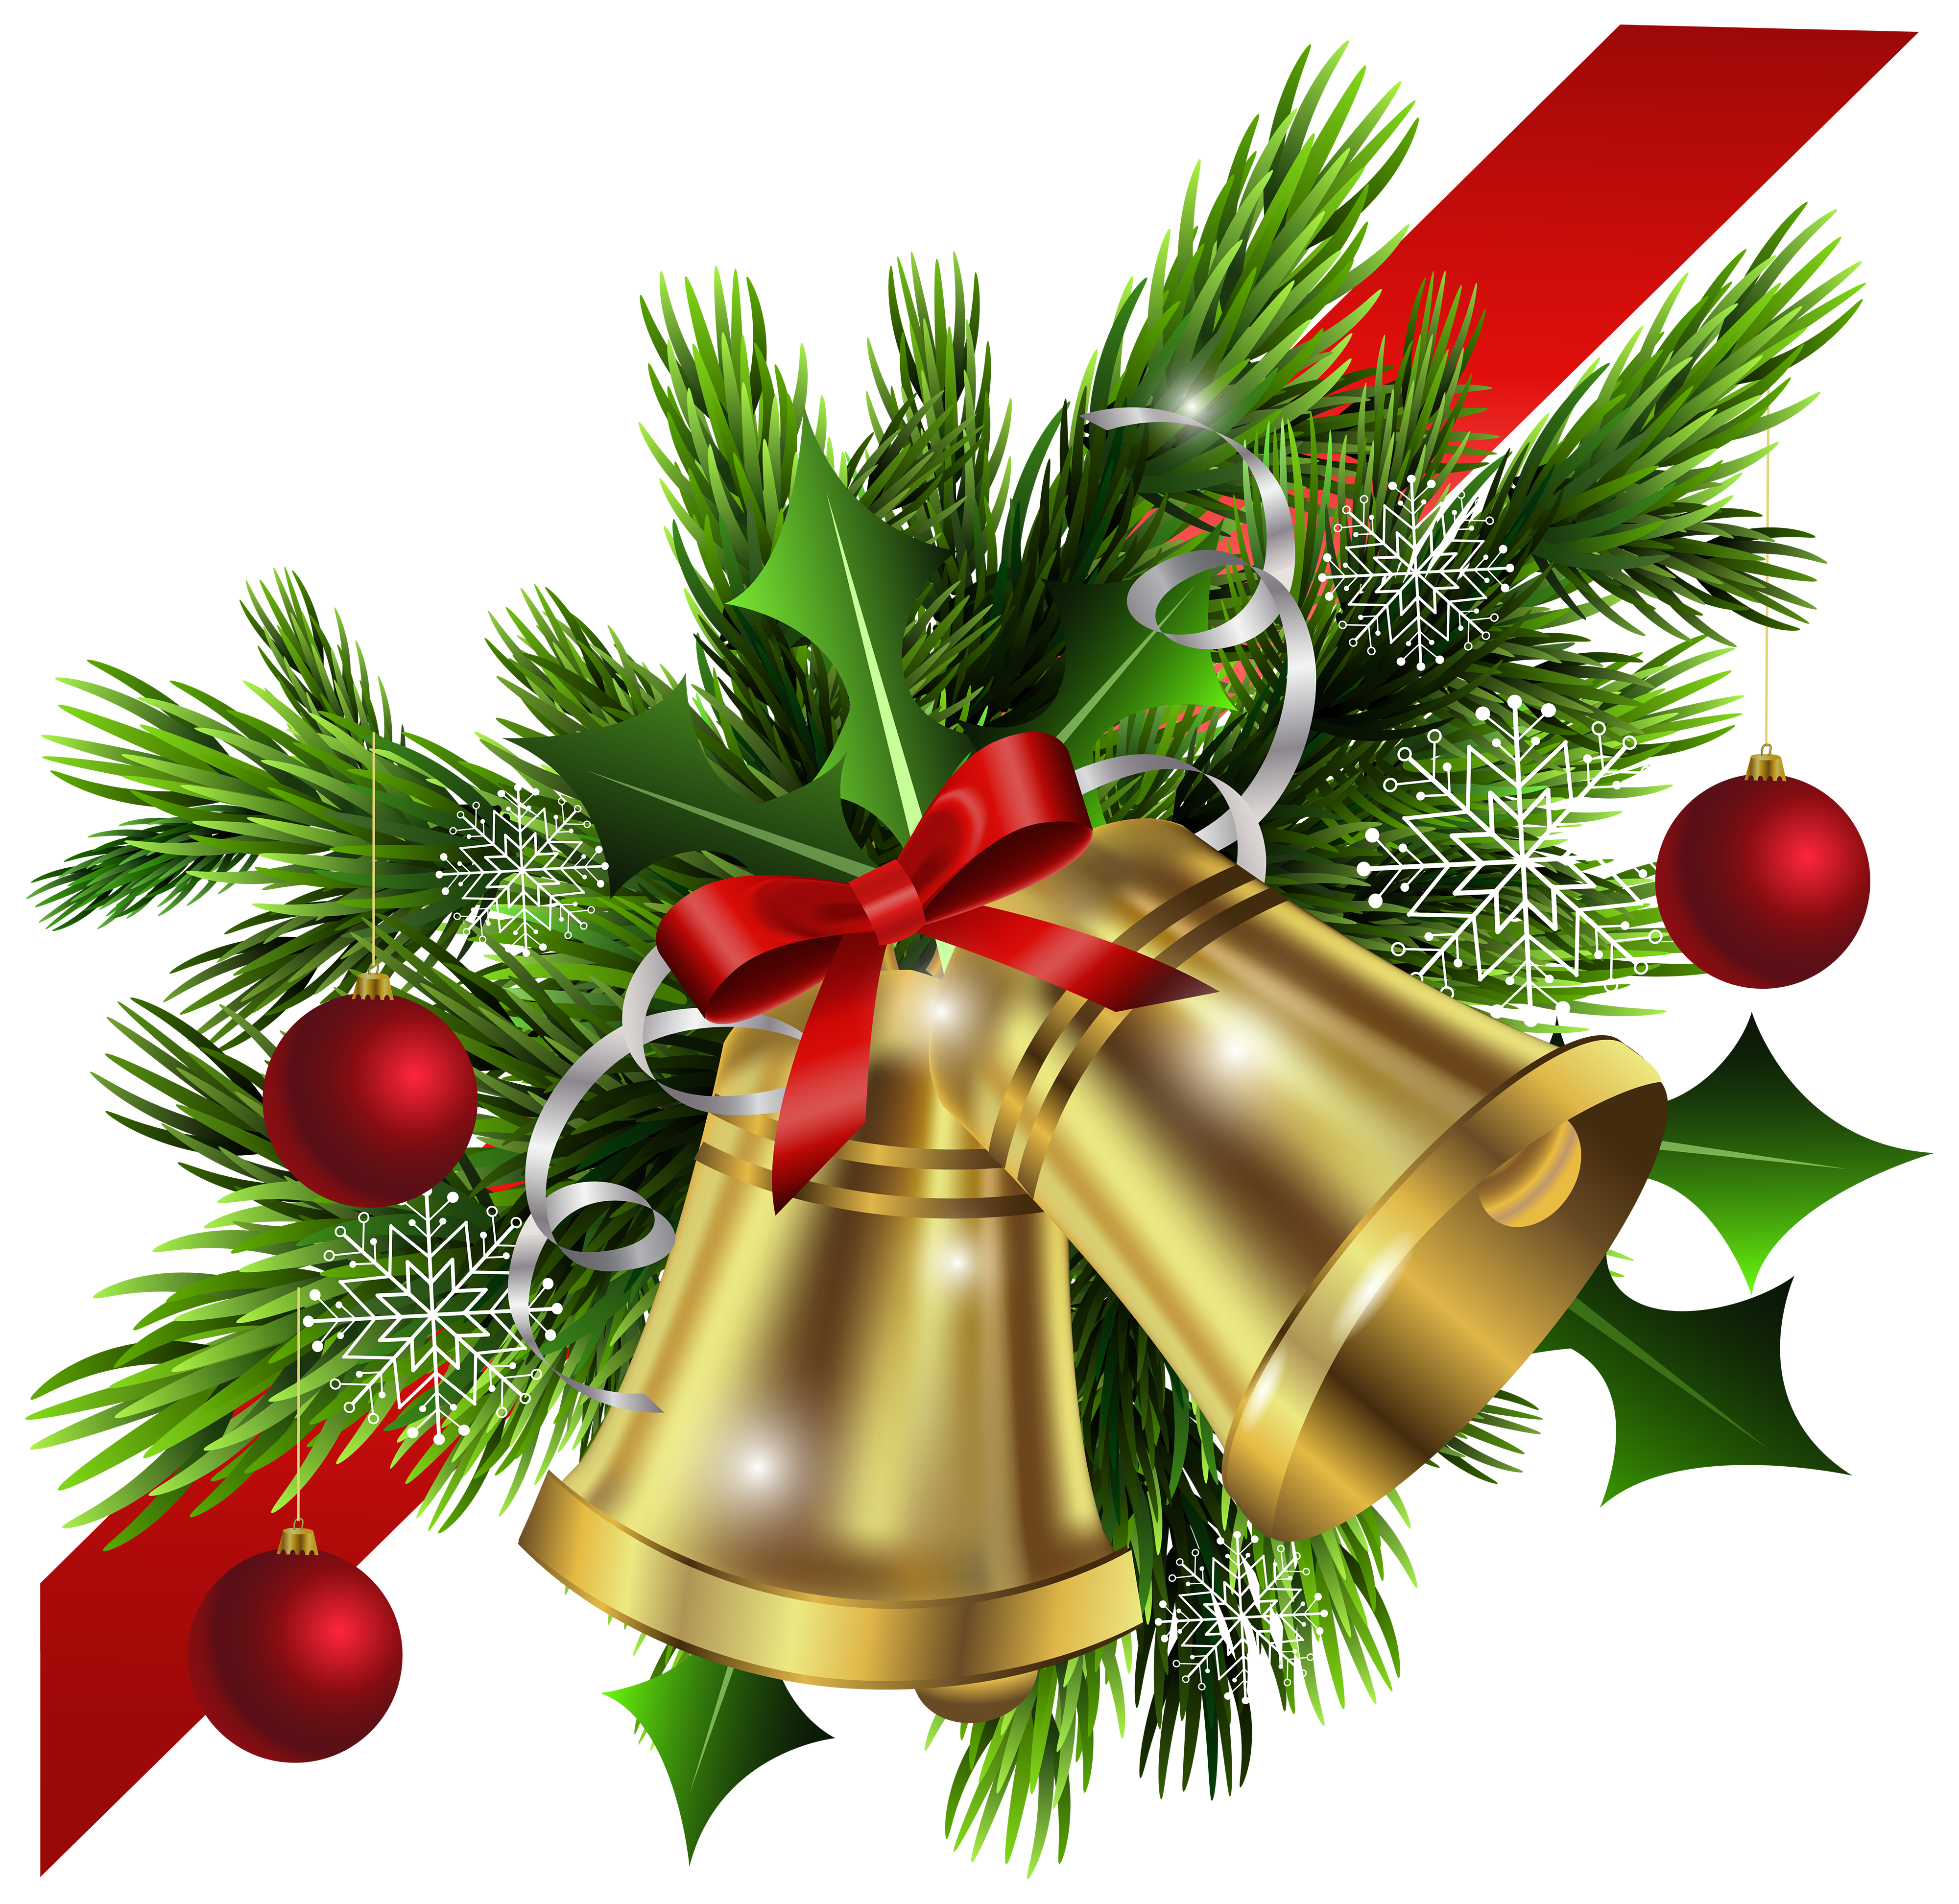 Christmas Red Bow and Bells Corner Transparent PNG Clip